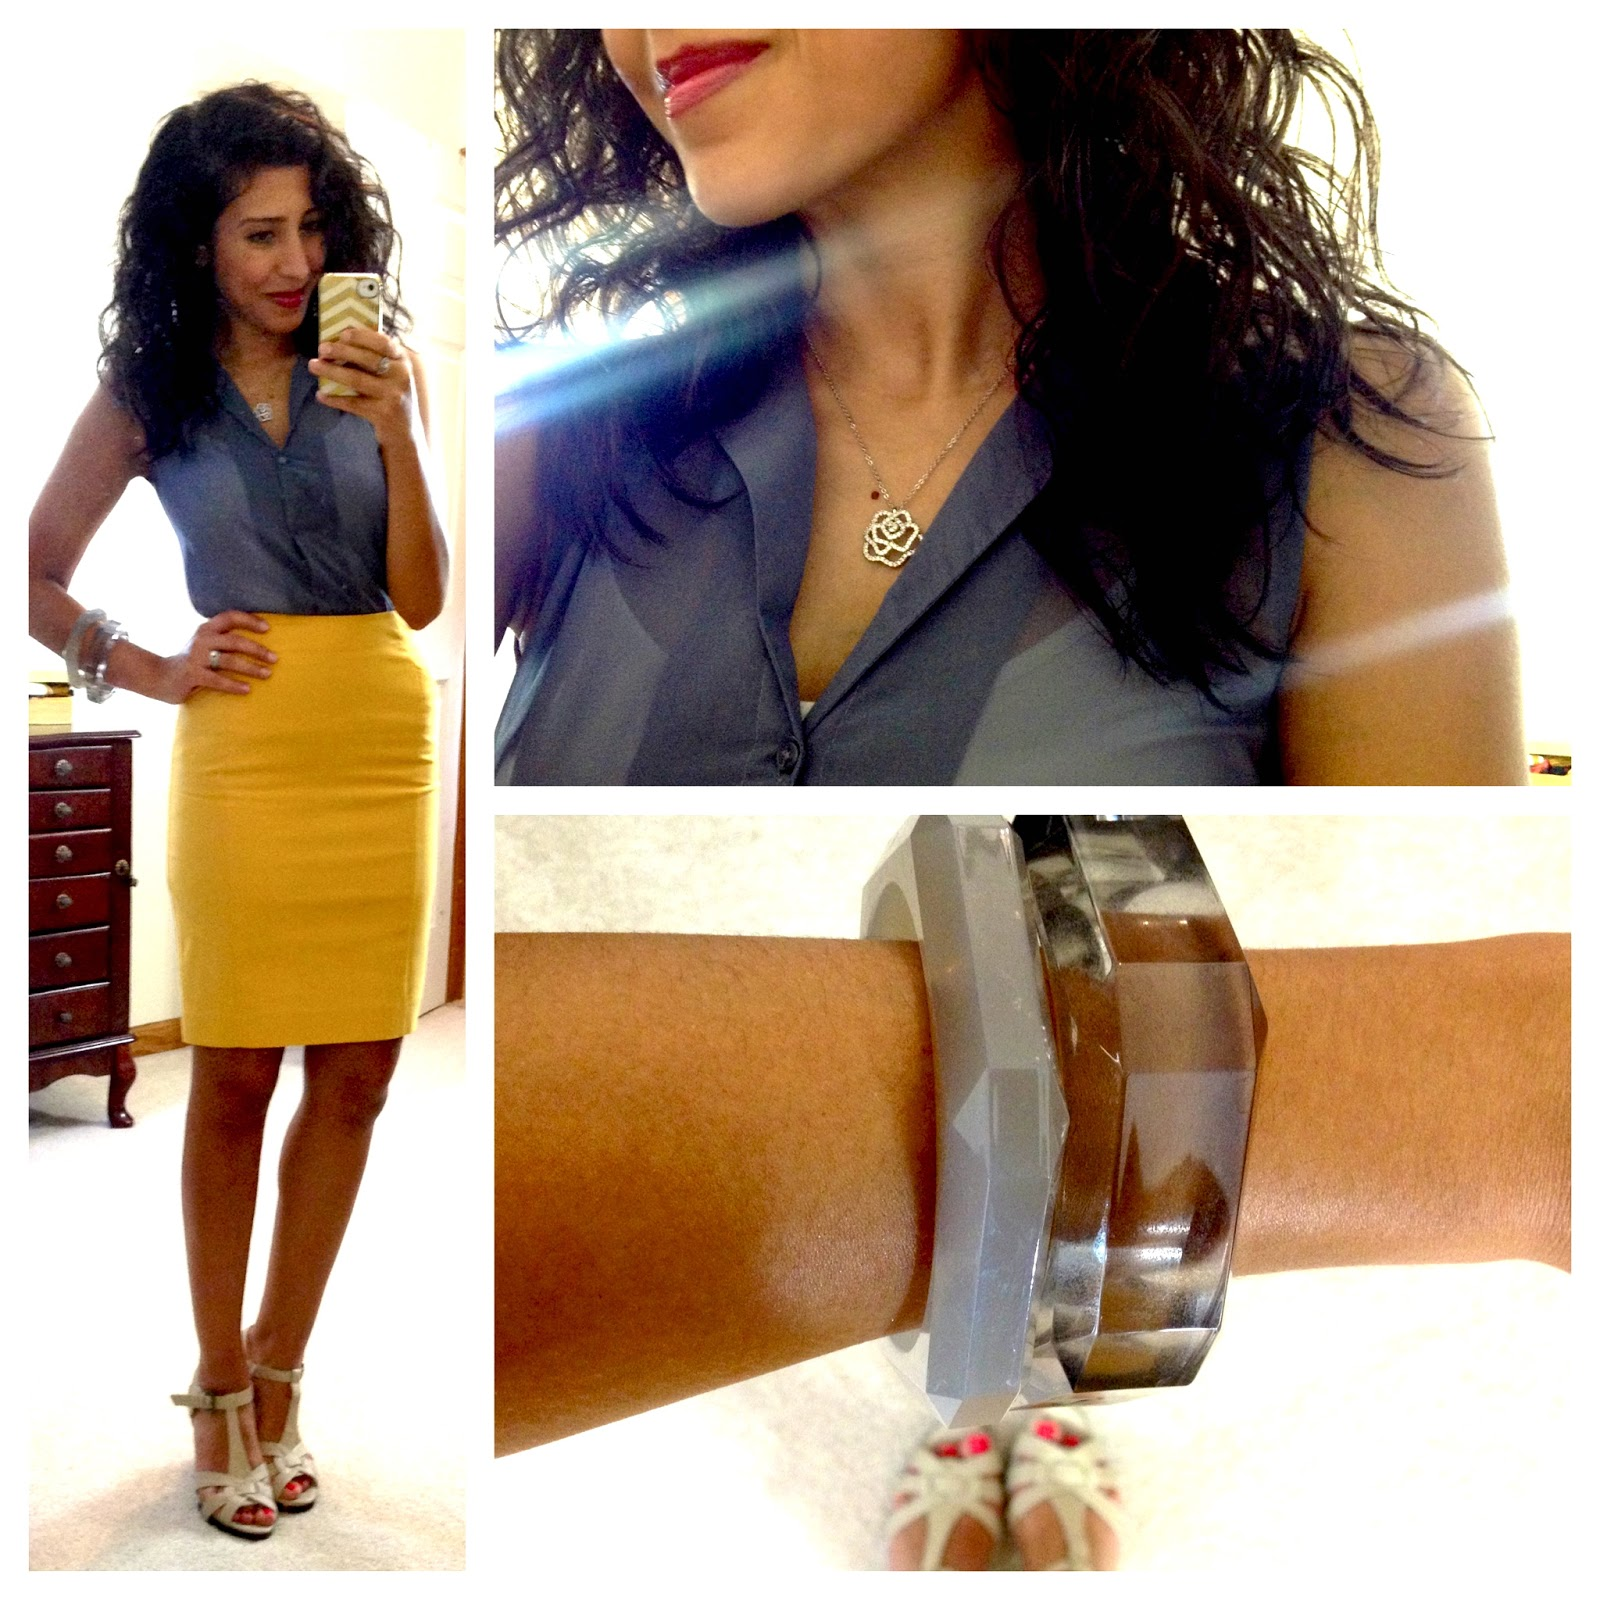 HM Blouse Stretch Pencil Skirt Bangles Swarovski Necklace Heels Via Kohls